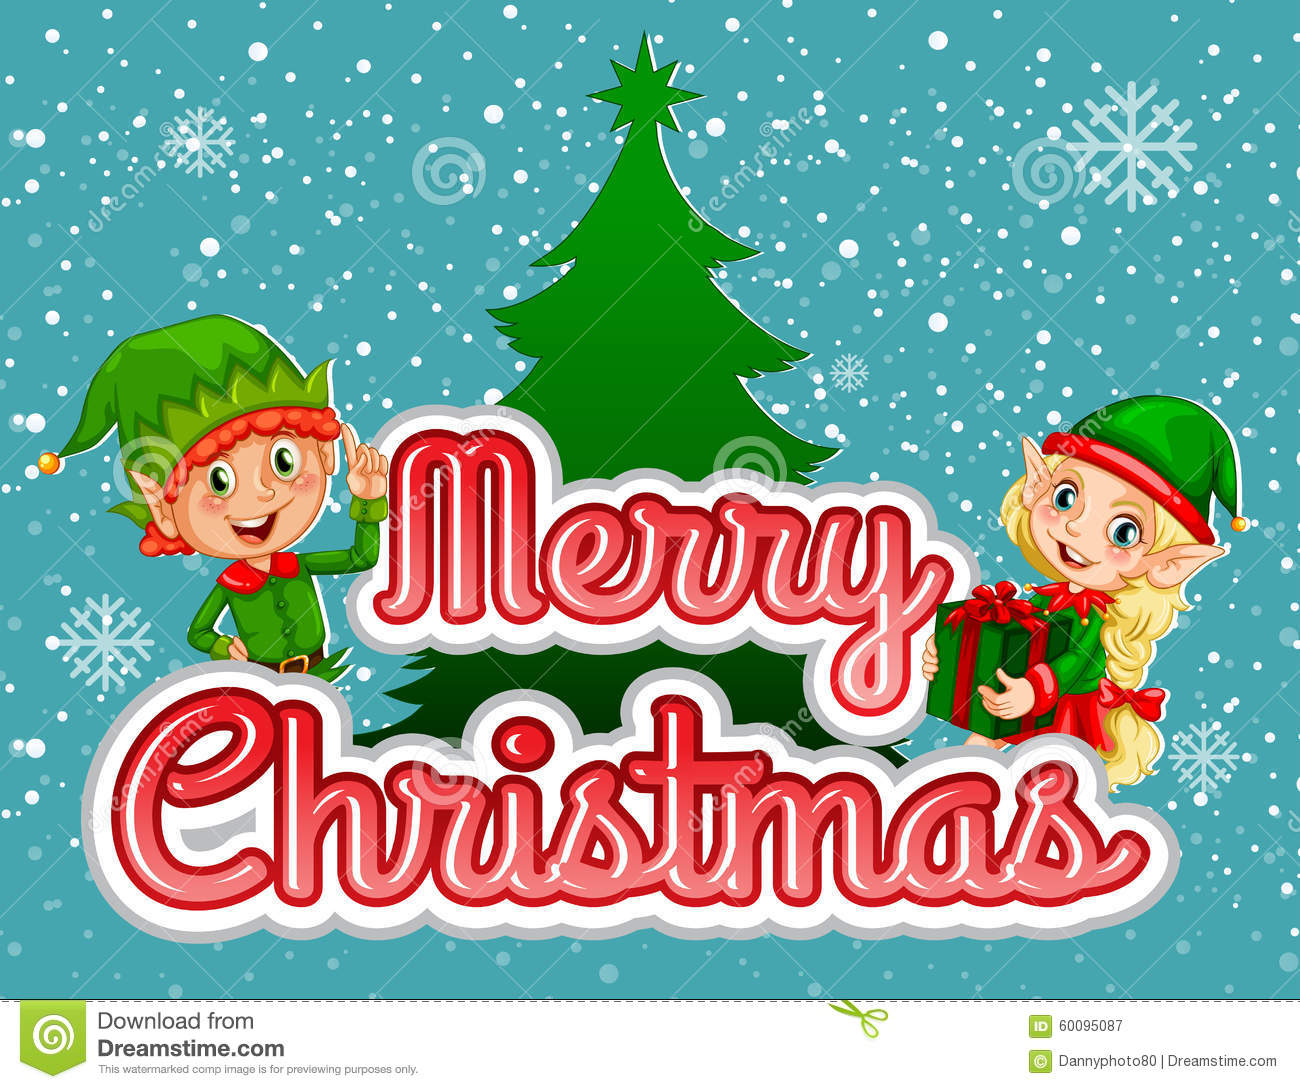 Merry Christmas Poster With Elf And Present Stock Vector - Image ...